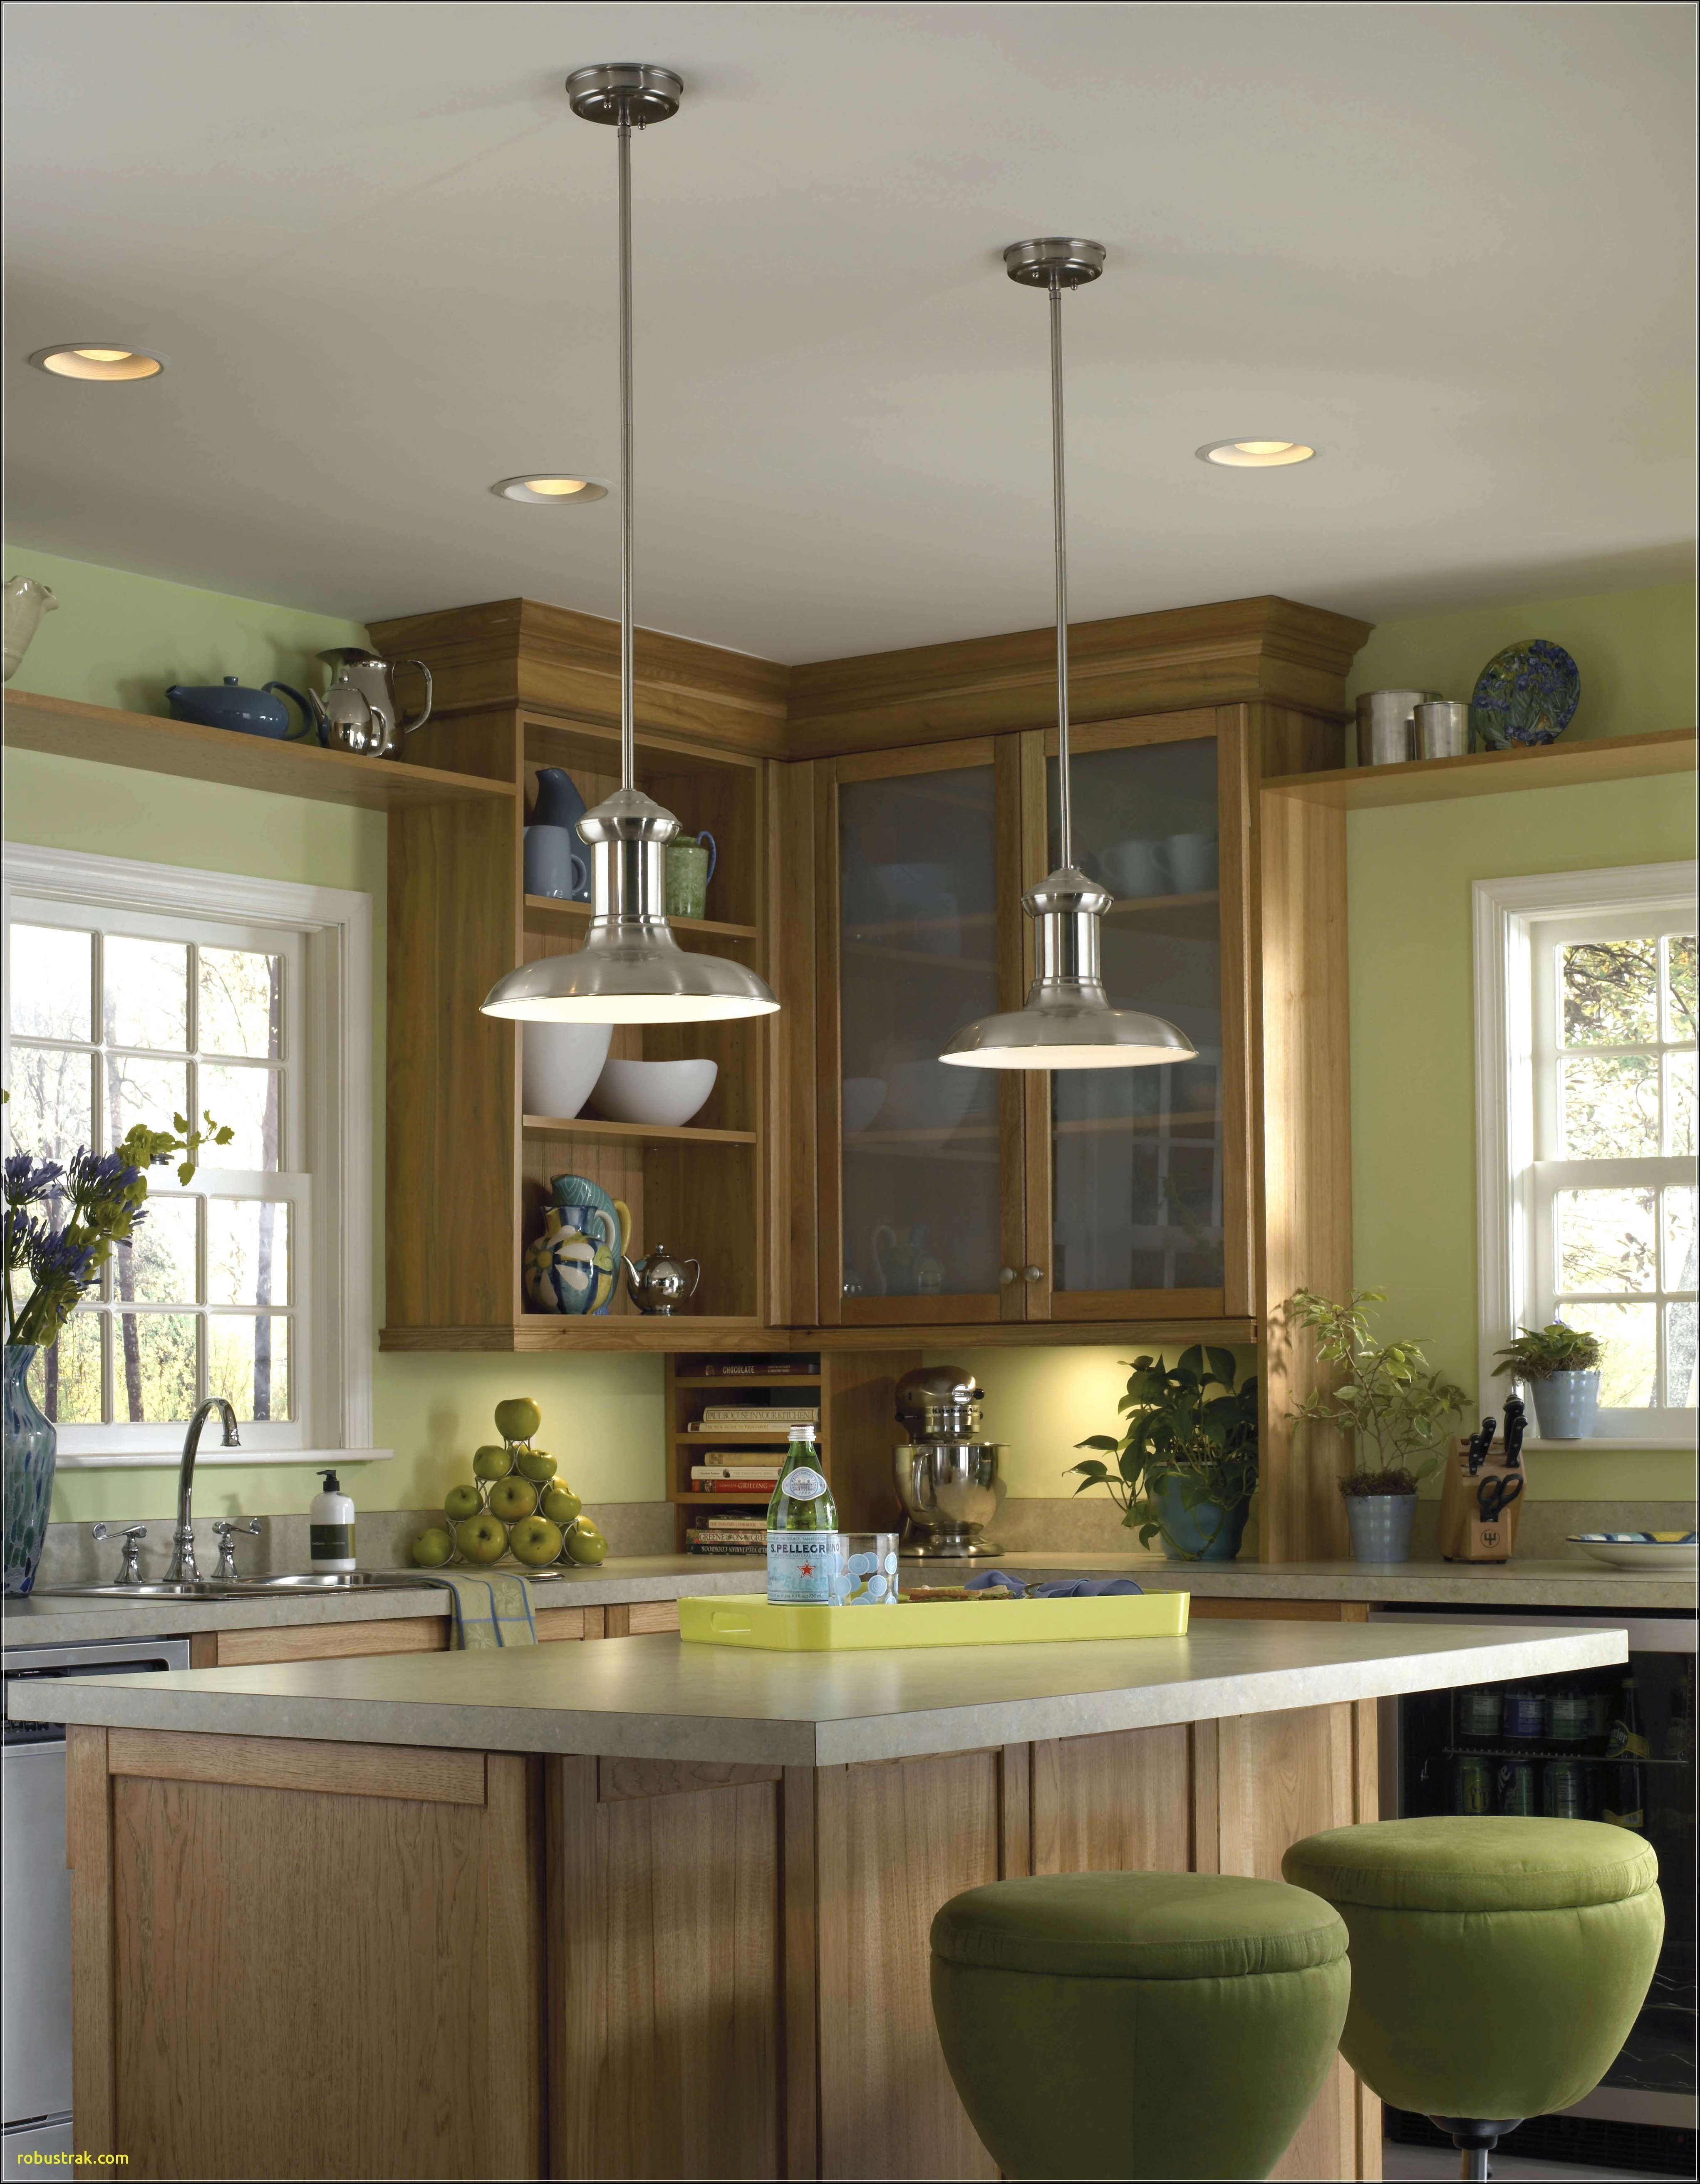 Best Pendant Lights for Kitchen Kitchen pendant lighting